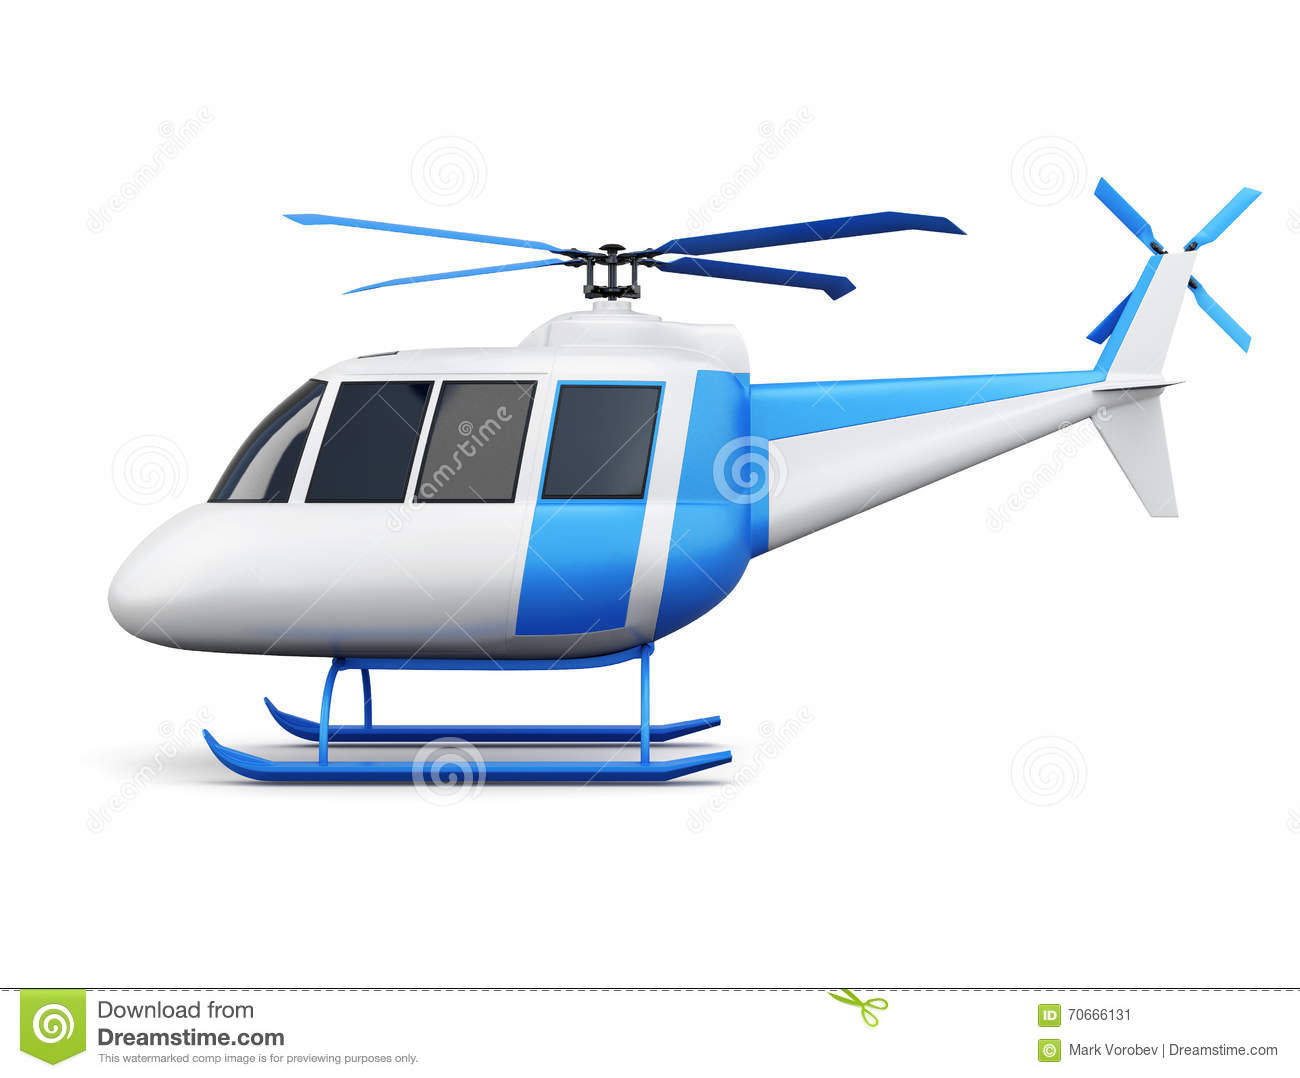 helicopter s prices with Stock Illustration Toy Helicopter Isolated White Background Side View D Rendering Image70666131 on Murrayayson moreover Palau Big Five Extension as well Stock Illustration Drone Copter Flight Delivering Box Cartoon Illustration Flying Post Office Image42593712 further Shelby Series 1 as well Royalty Free Stock Photography Green Dragon Image9071467.